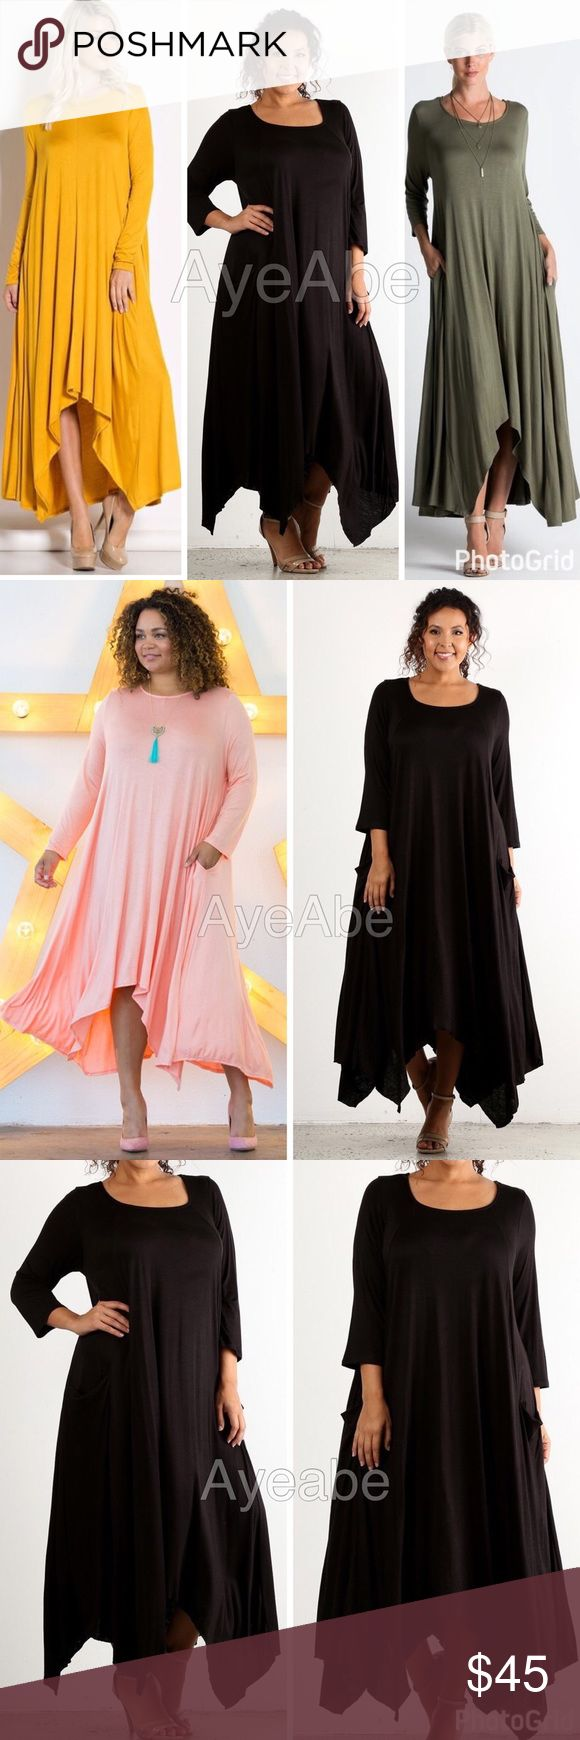 plus size loose oversized fit hi low maxi dress New plus size  Hi Low hem, asymmetrical hem Long Sleeve  Oversized Flowy Maxi with pockets SUPER sexy Long sleeve hi low maxi dress,side Pockets, Oversized, loose fit Super Comfy, soft knit jersey material lightweight fabric. Dresses Maxi